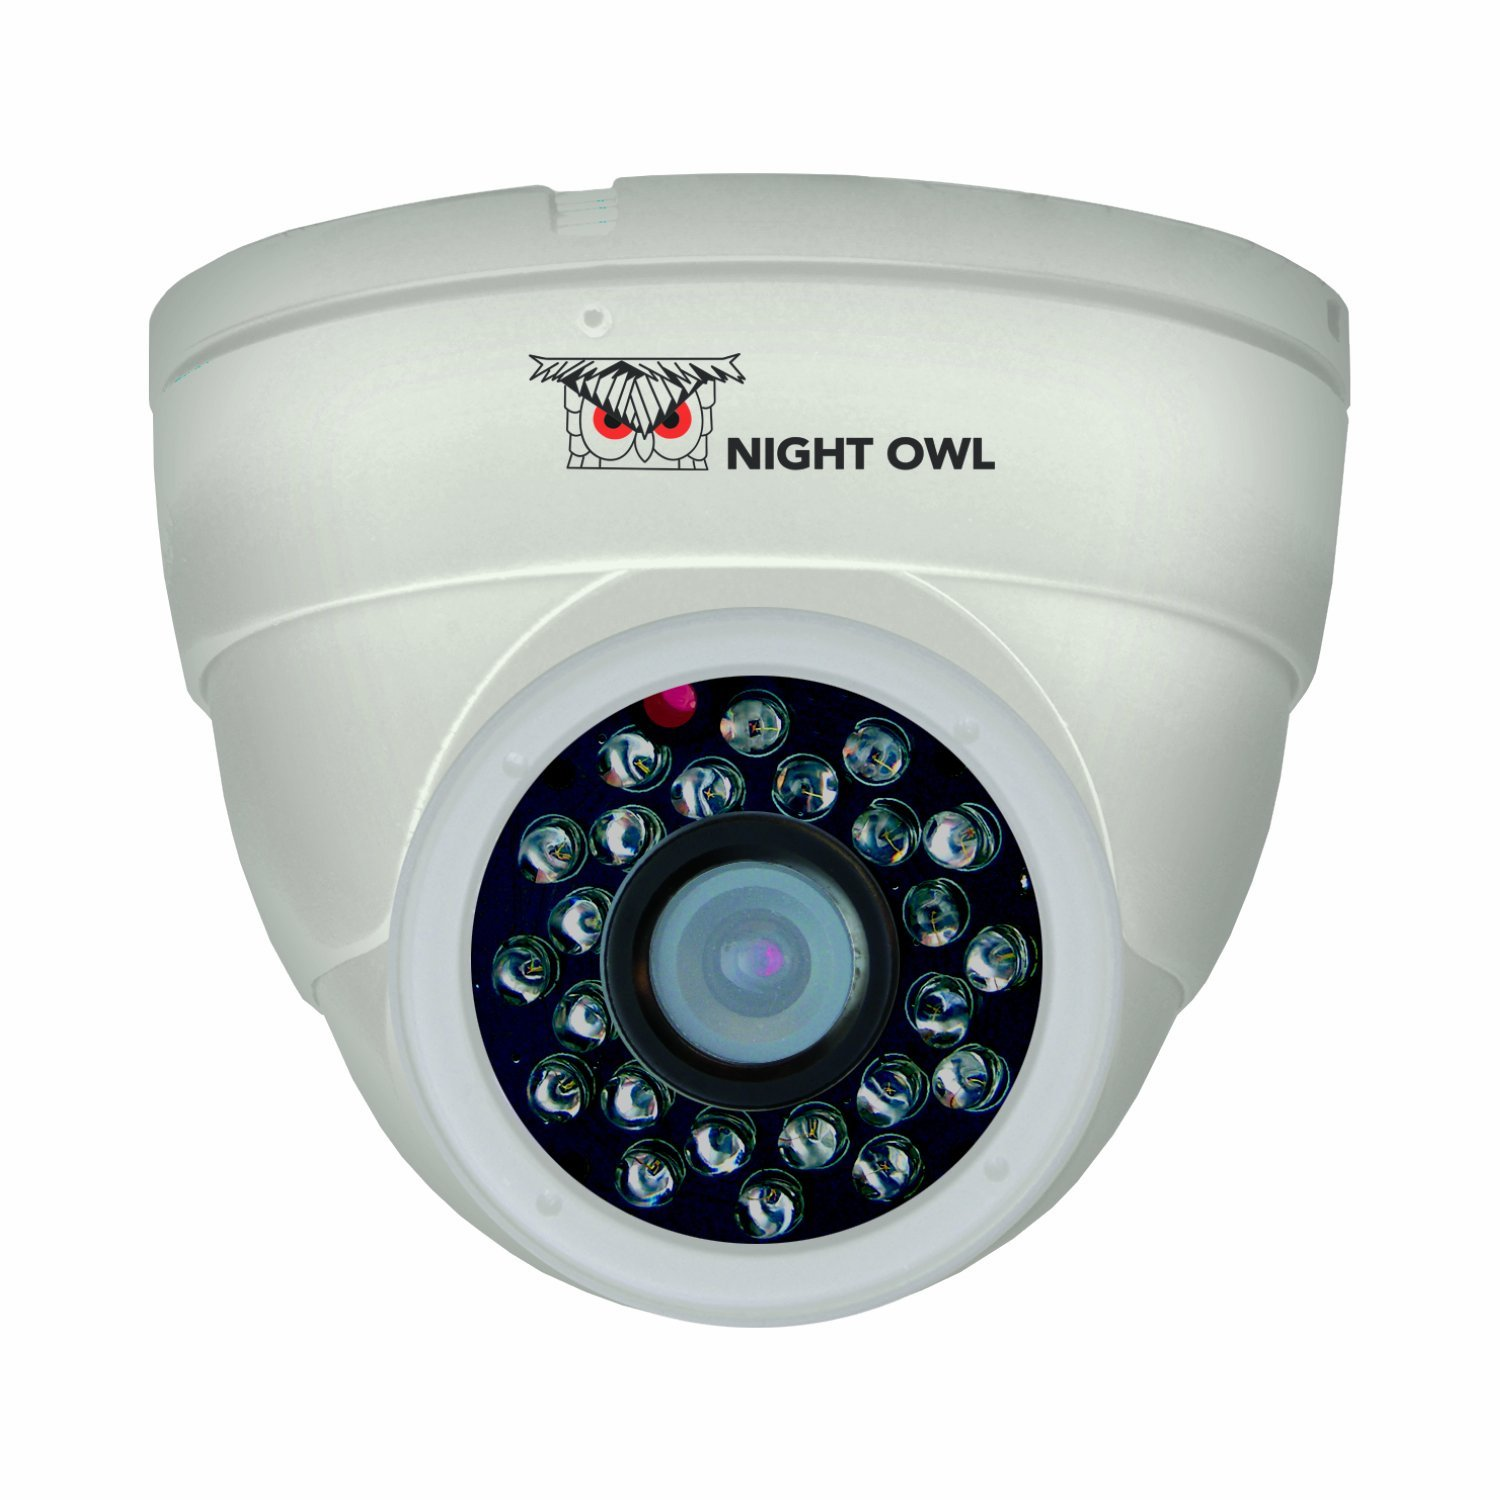 Night Owl Security CAM-DM624-W Hi-Resolution 600 TVL Security Dome Camera with 50-Feet of Night Vision (White) [並行輸入品] B01JJHHDMW